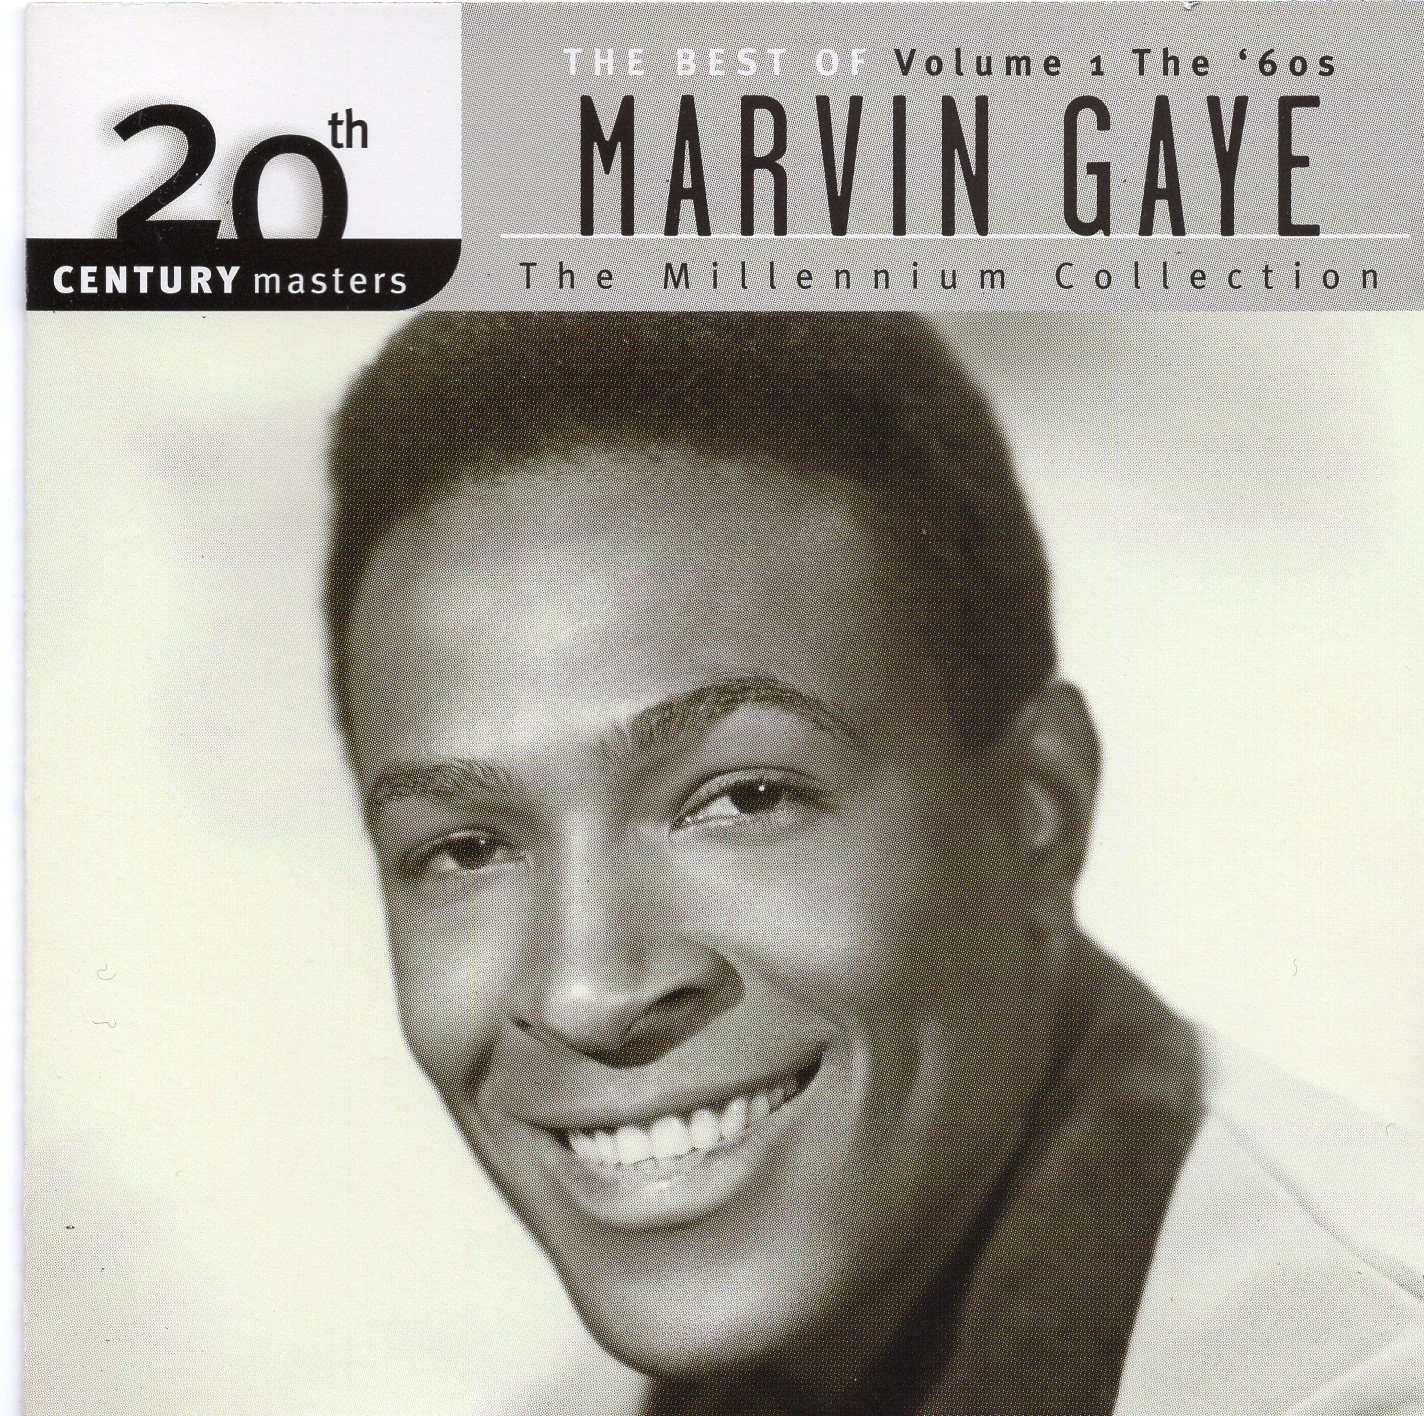 """The Best of Marvin Gays Volume 1 The '60s"" Marvin Gays"